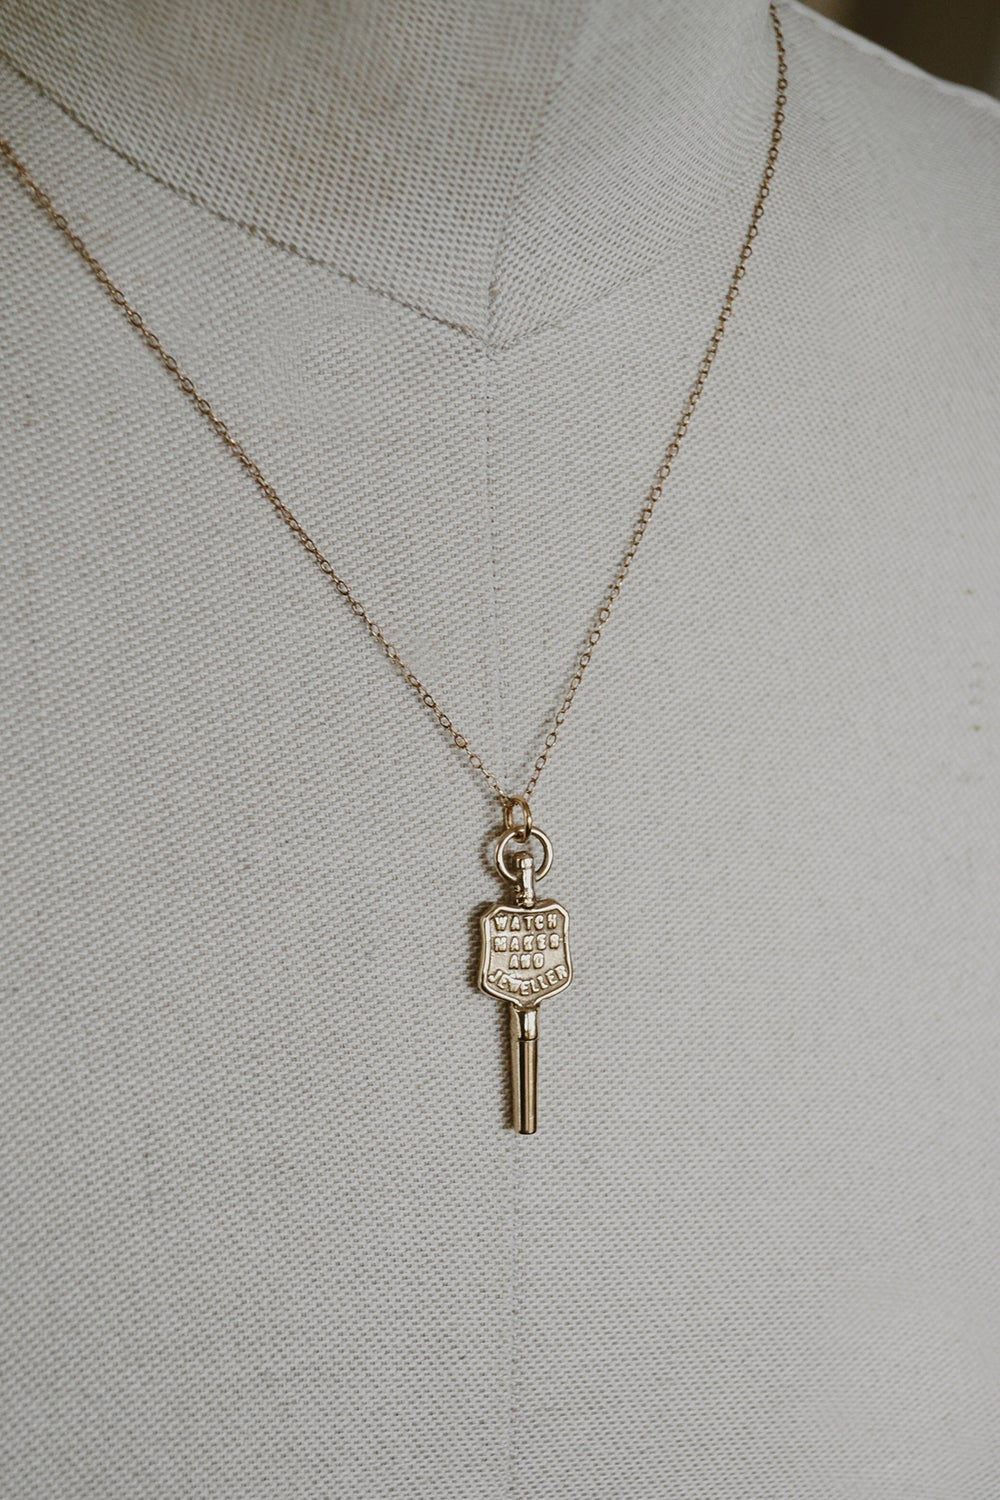 Image of The Jeweller Necklace